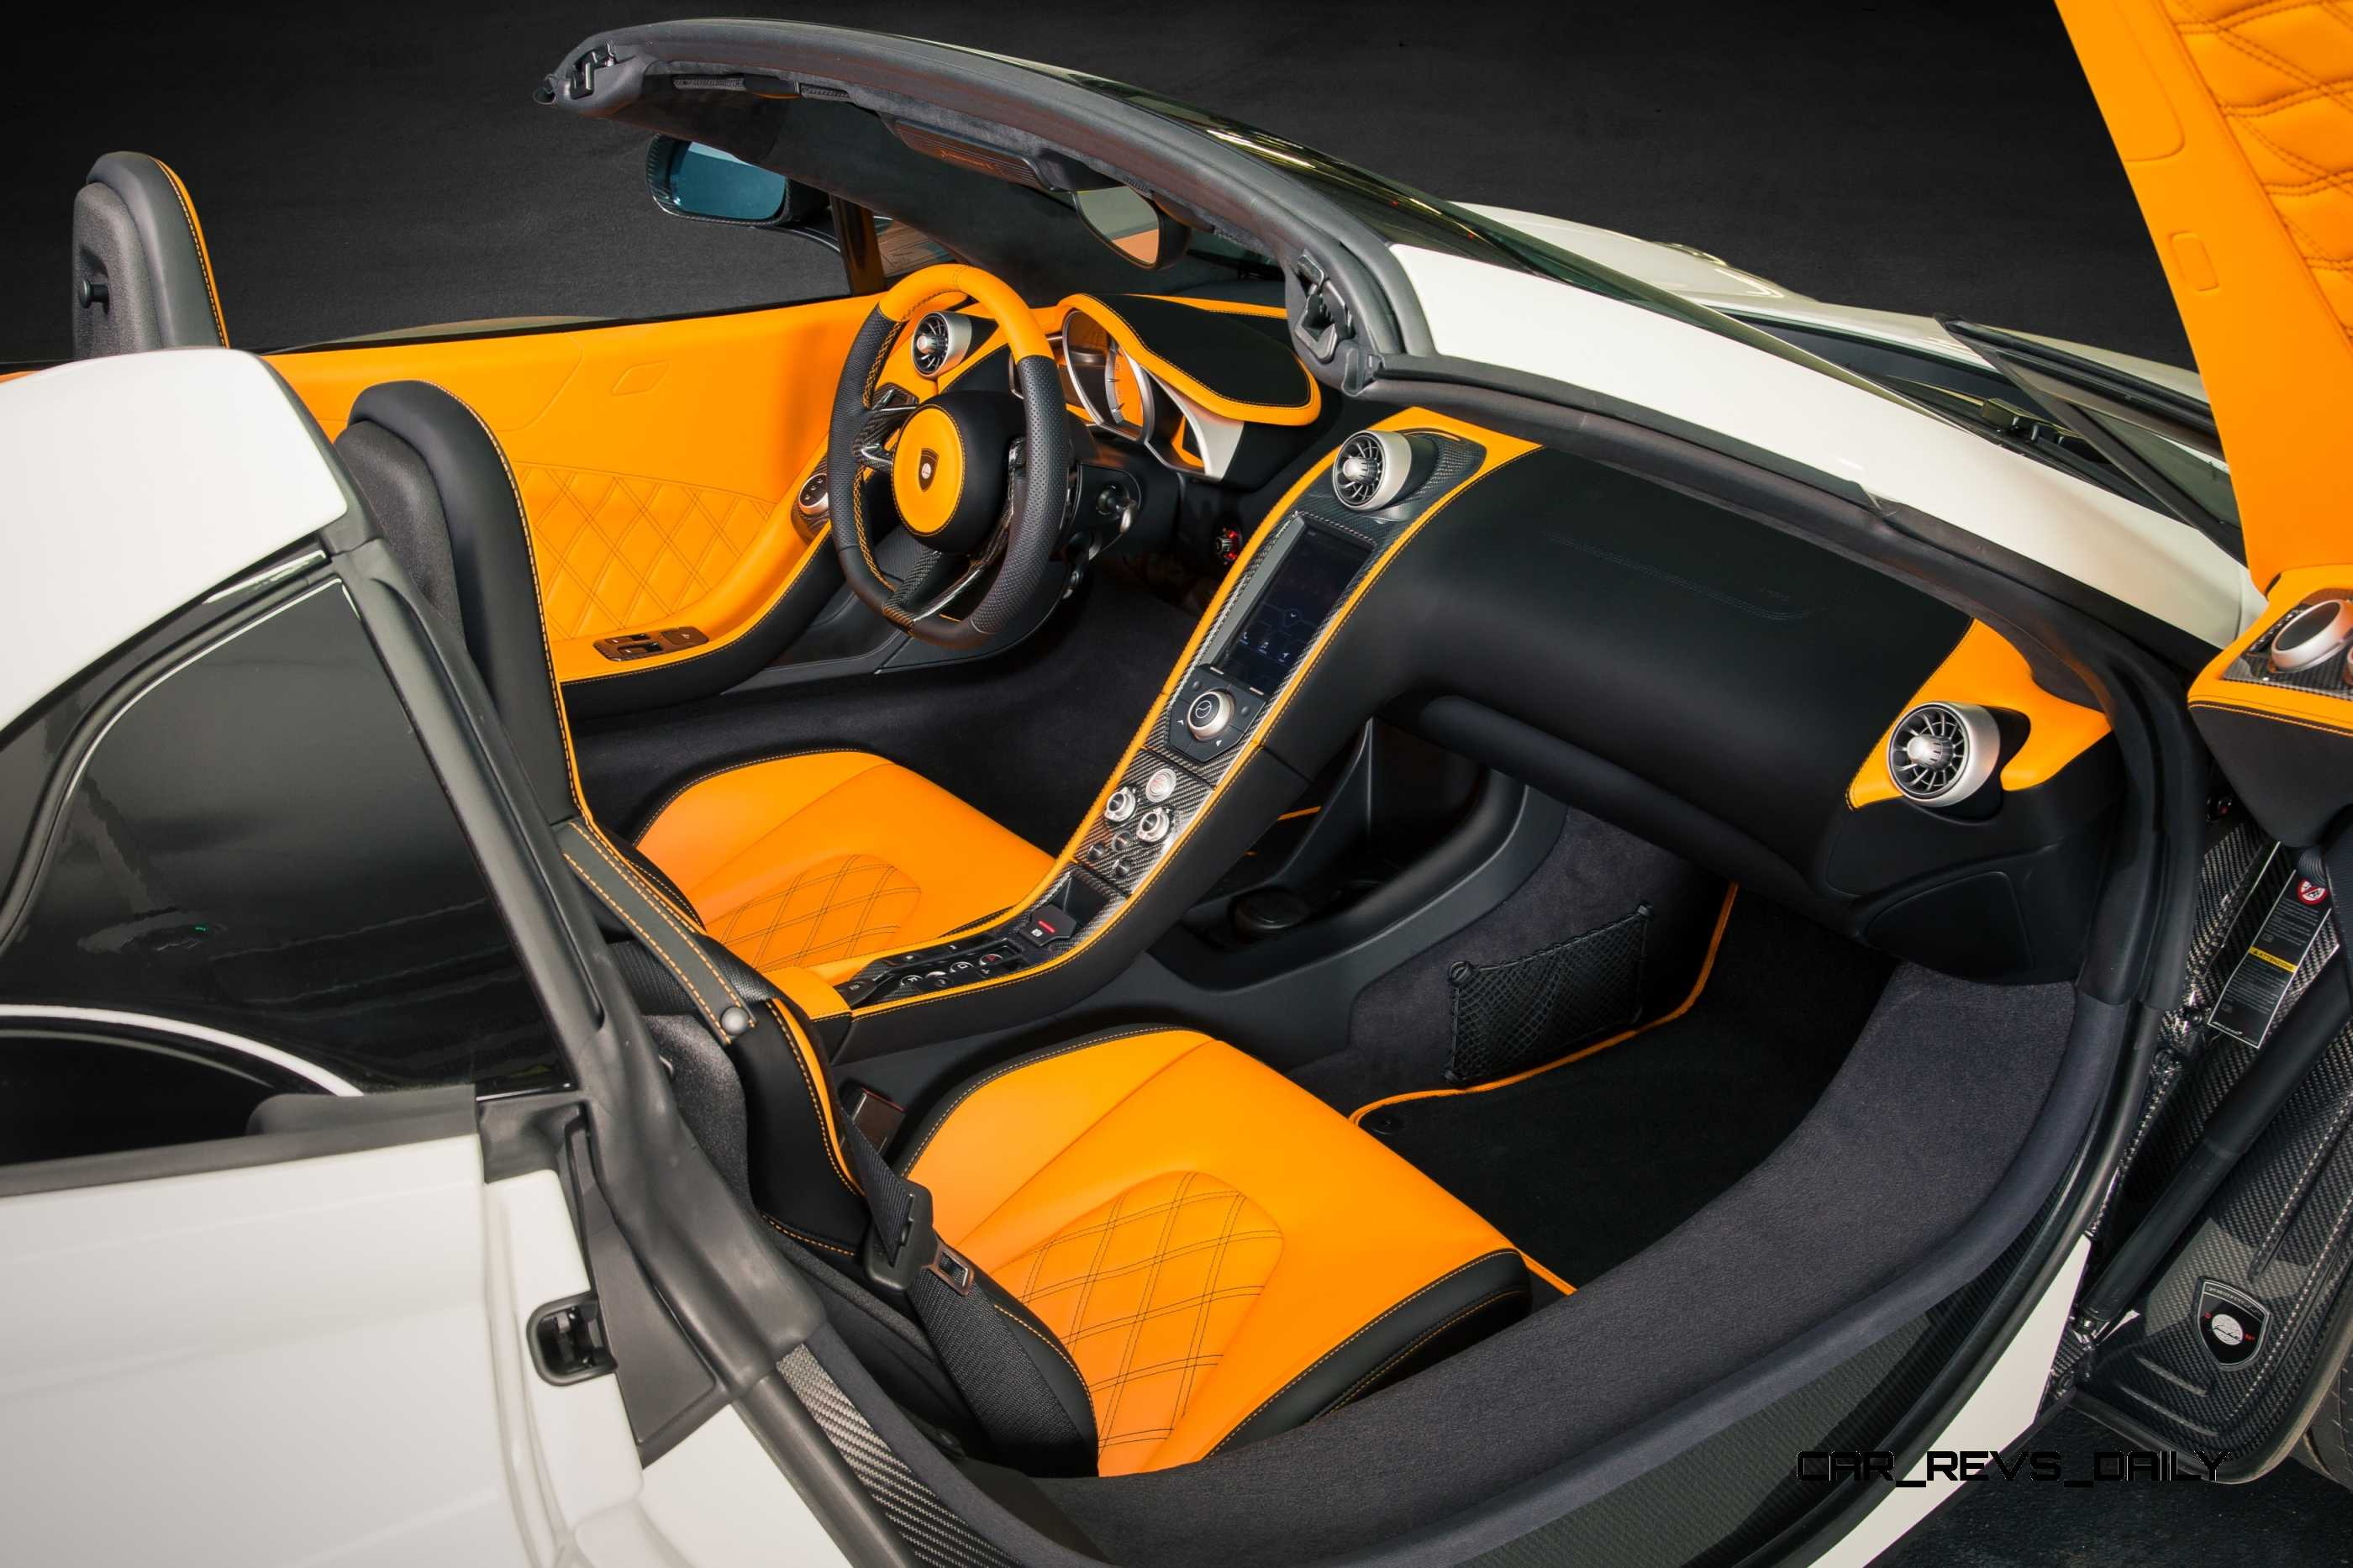 http://www.car-revs-daily.com/wp-content/uploads/2014/11/GEMBALLA-GT-Spider-Is-Perfect-Update-For-McLaren-12C-Spider-21.jpg